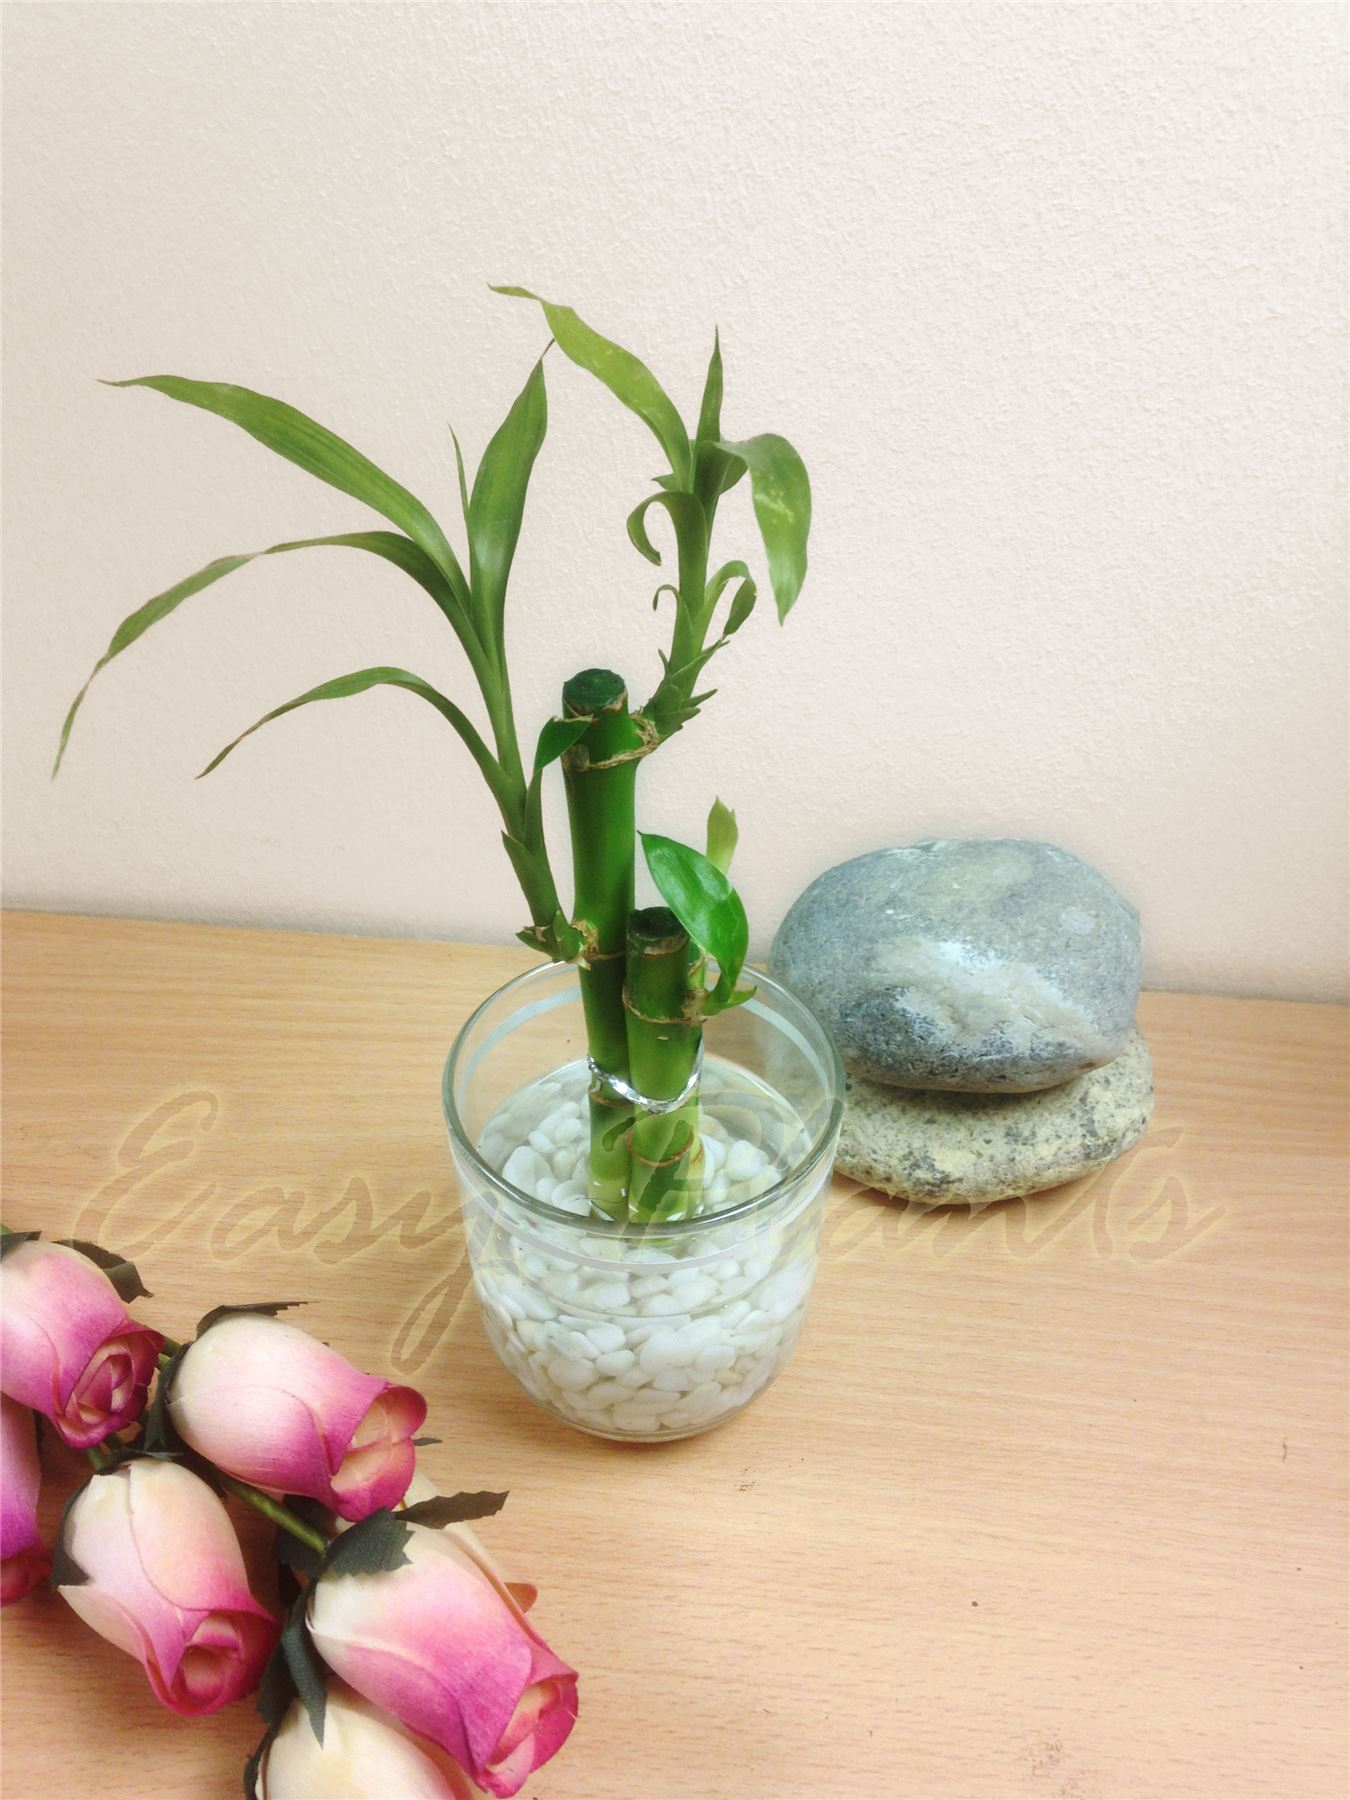 1 pot of lucky bamboo in colourful glass vase house plant feng shui office decor ebay. Black Bedroom Furniture Sets. Home Design Ideas